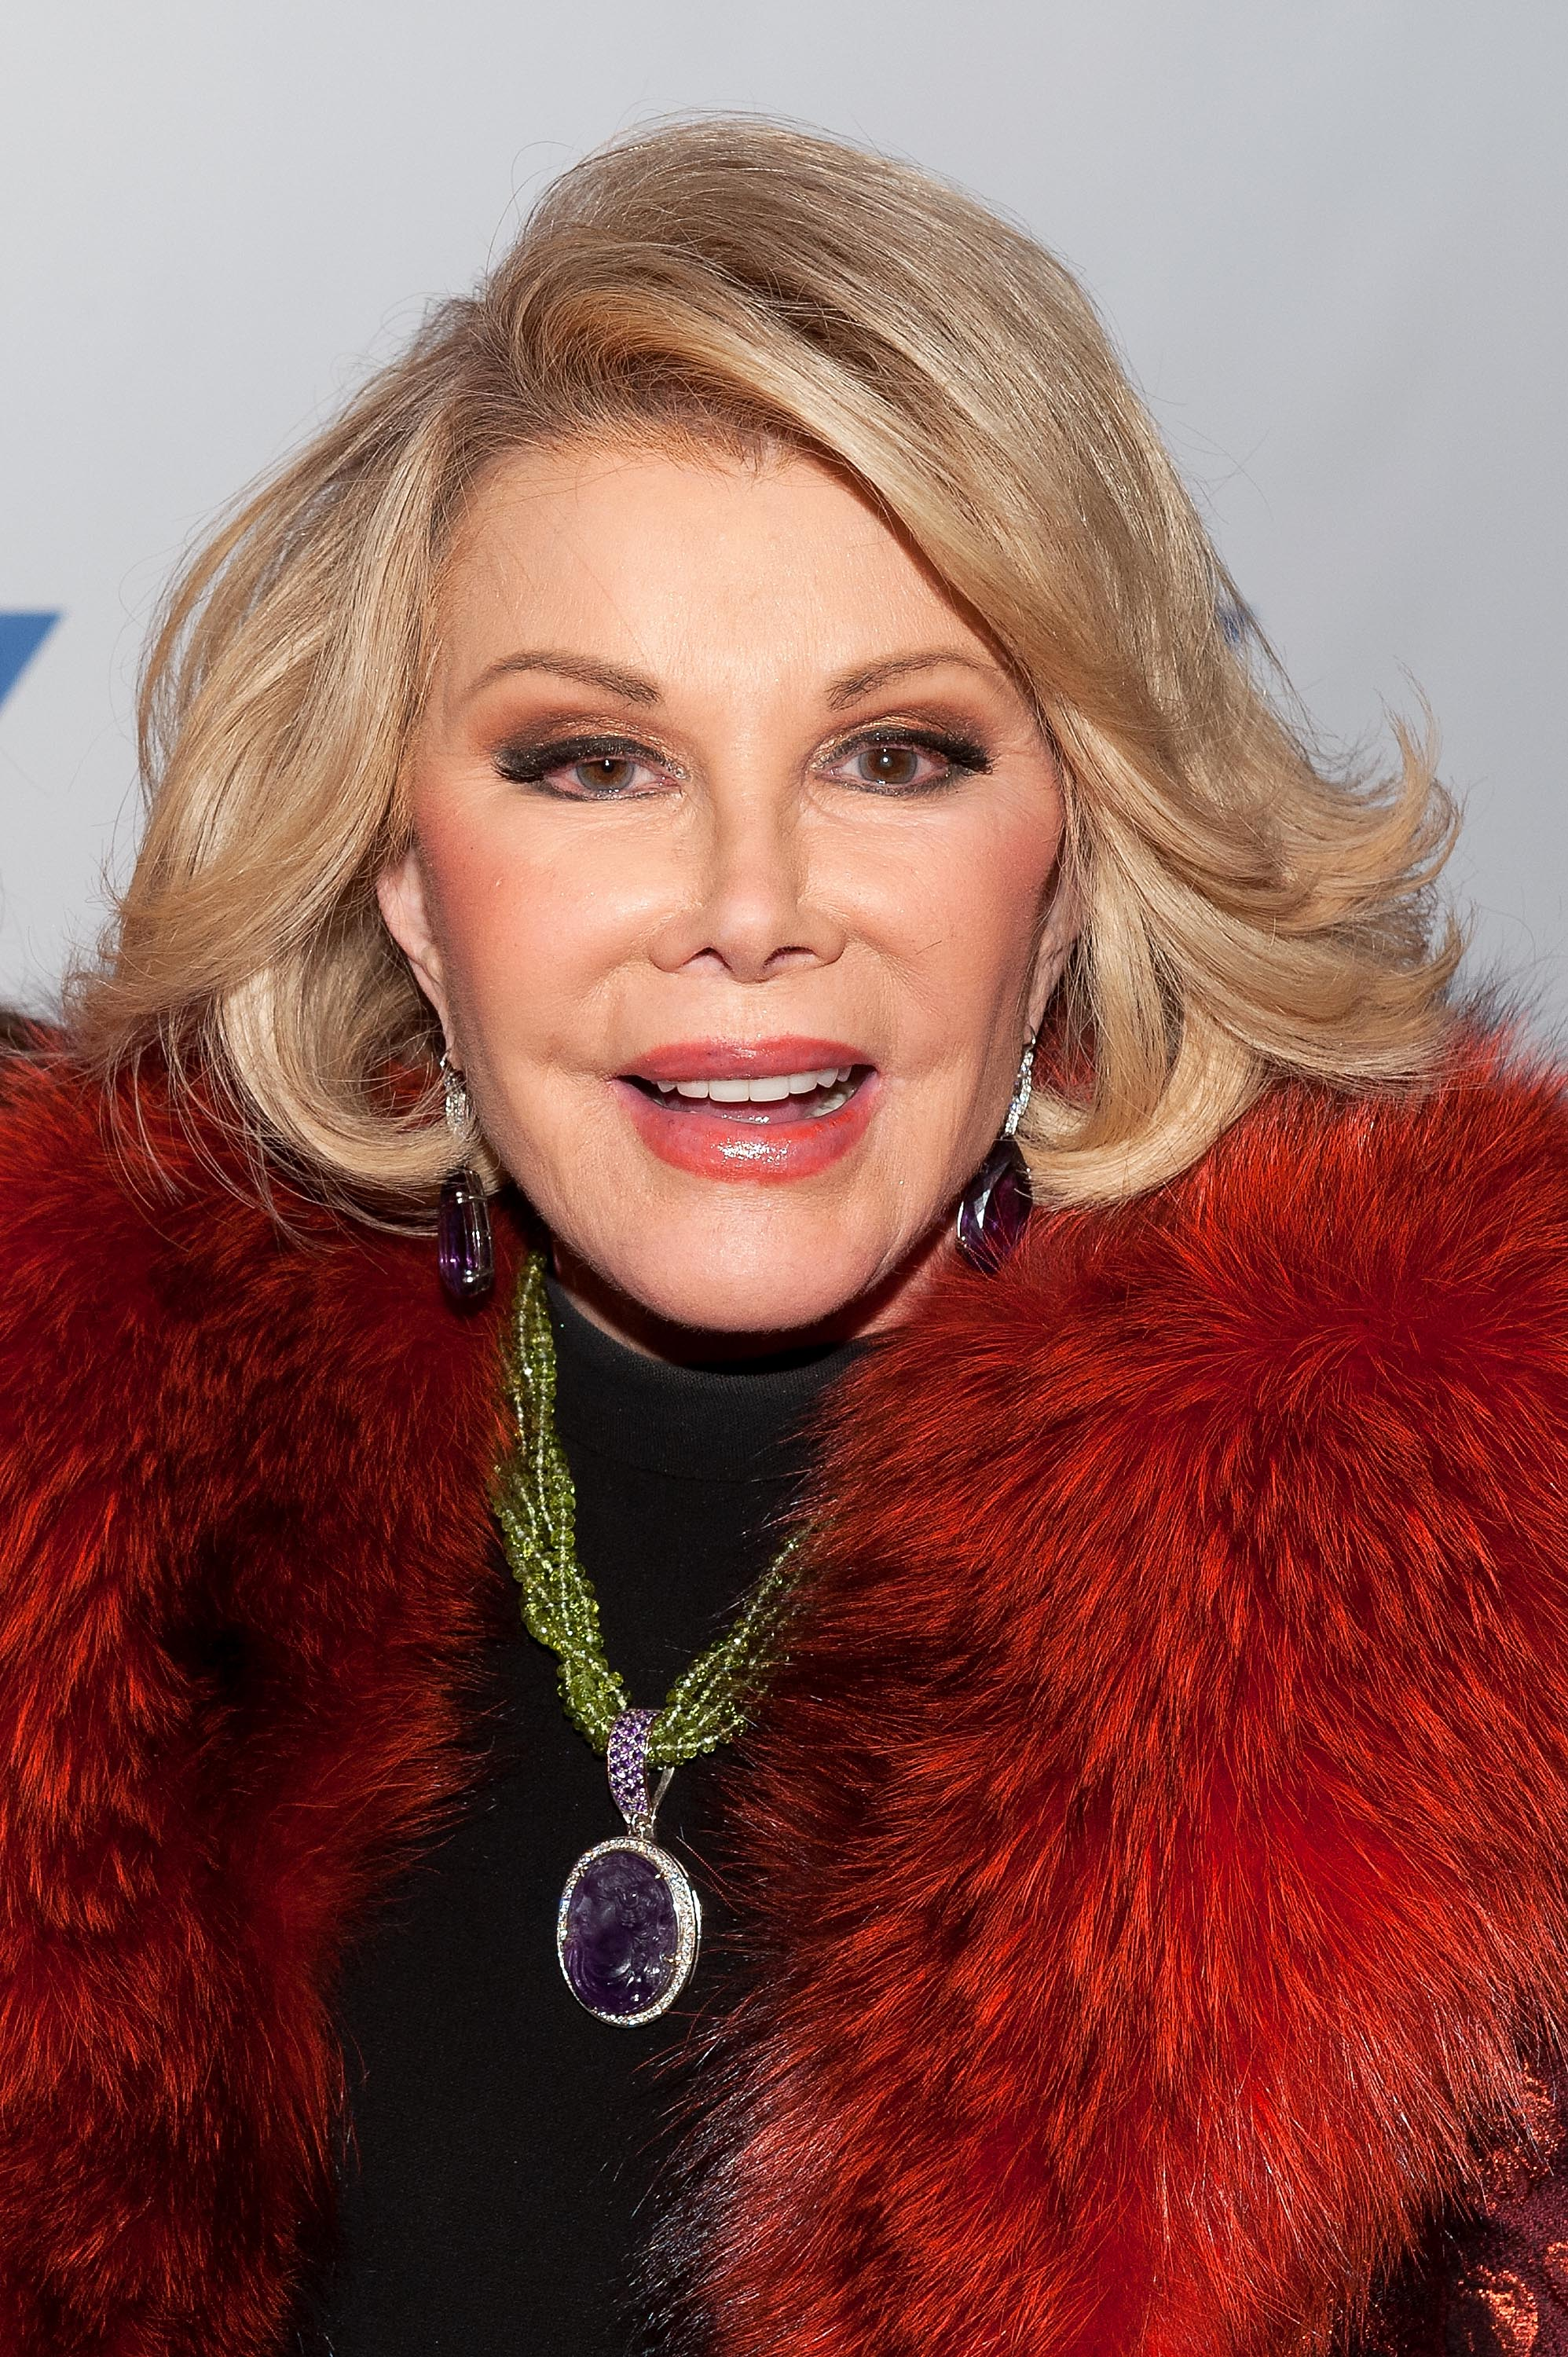 Joan Rivers attends An Evening With Joan And Melissa Rivers at the 92nd Street Y on Jan. 22, 2014 in New York City.